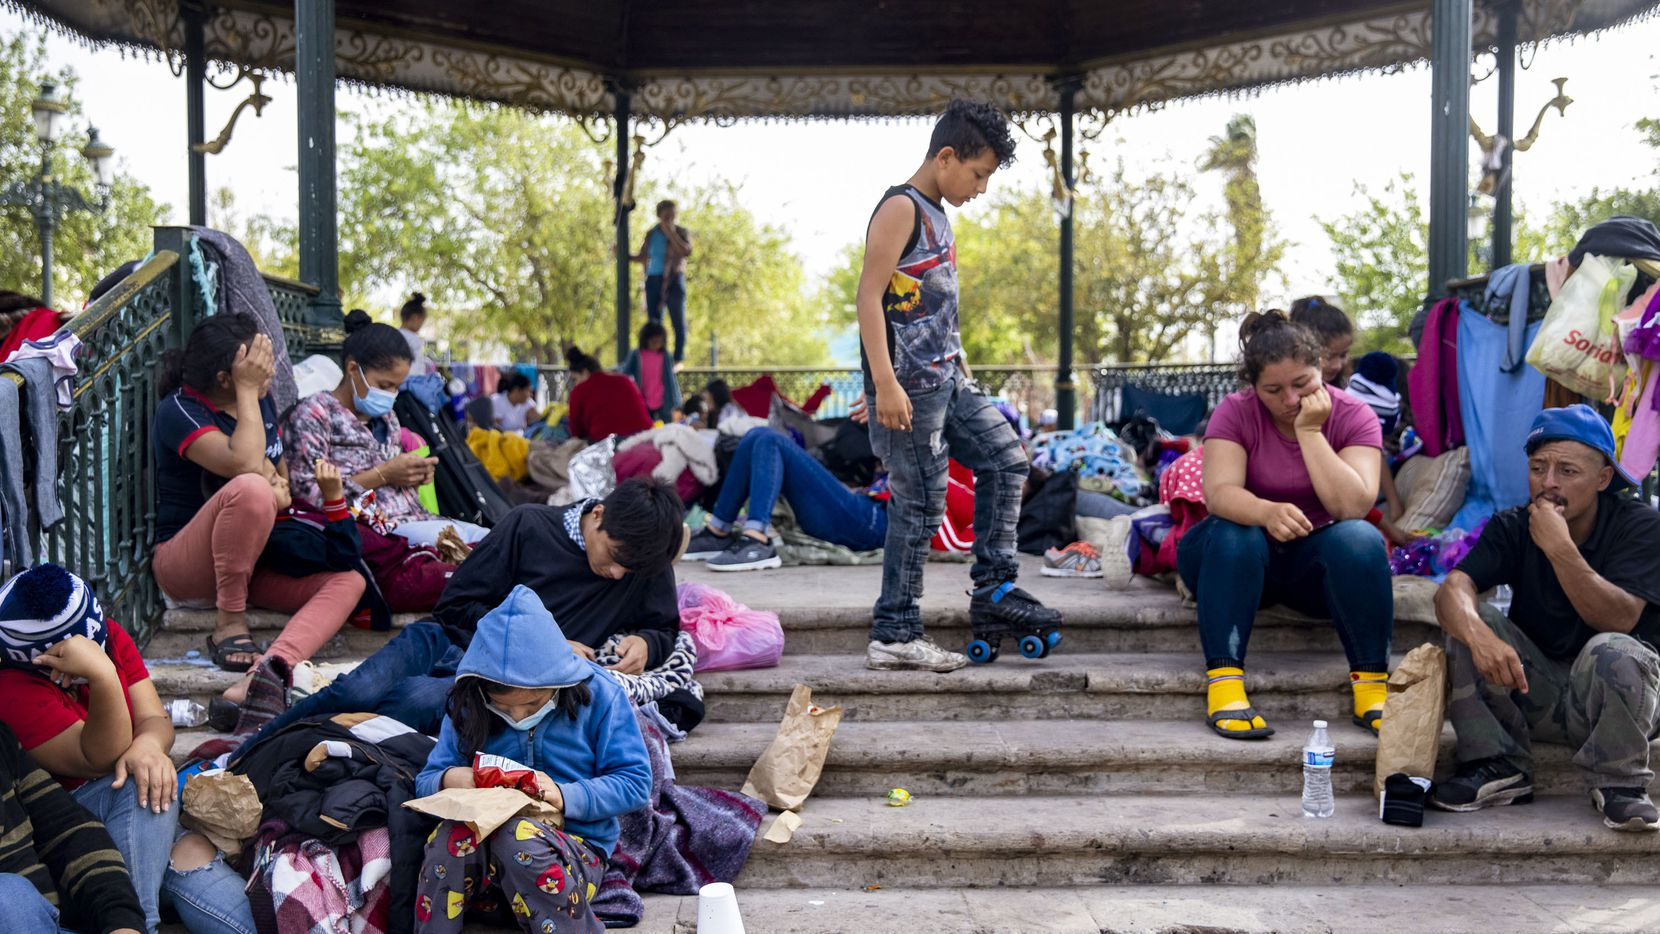 A young boy plays with a single roller-skate among other expelled migrants who sit around a gazebo in a public square in the Mexican border city of Reynosa on March 31, 2021. Migrants have resorted to living at the plaza as the U.S. continues to expel migrants under Title 42 — a pandemic-related public order still in place and left over from the Trump administration. (Lynda M. González/The Dallas Morning News)